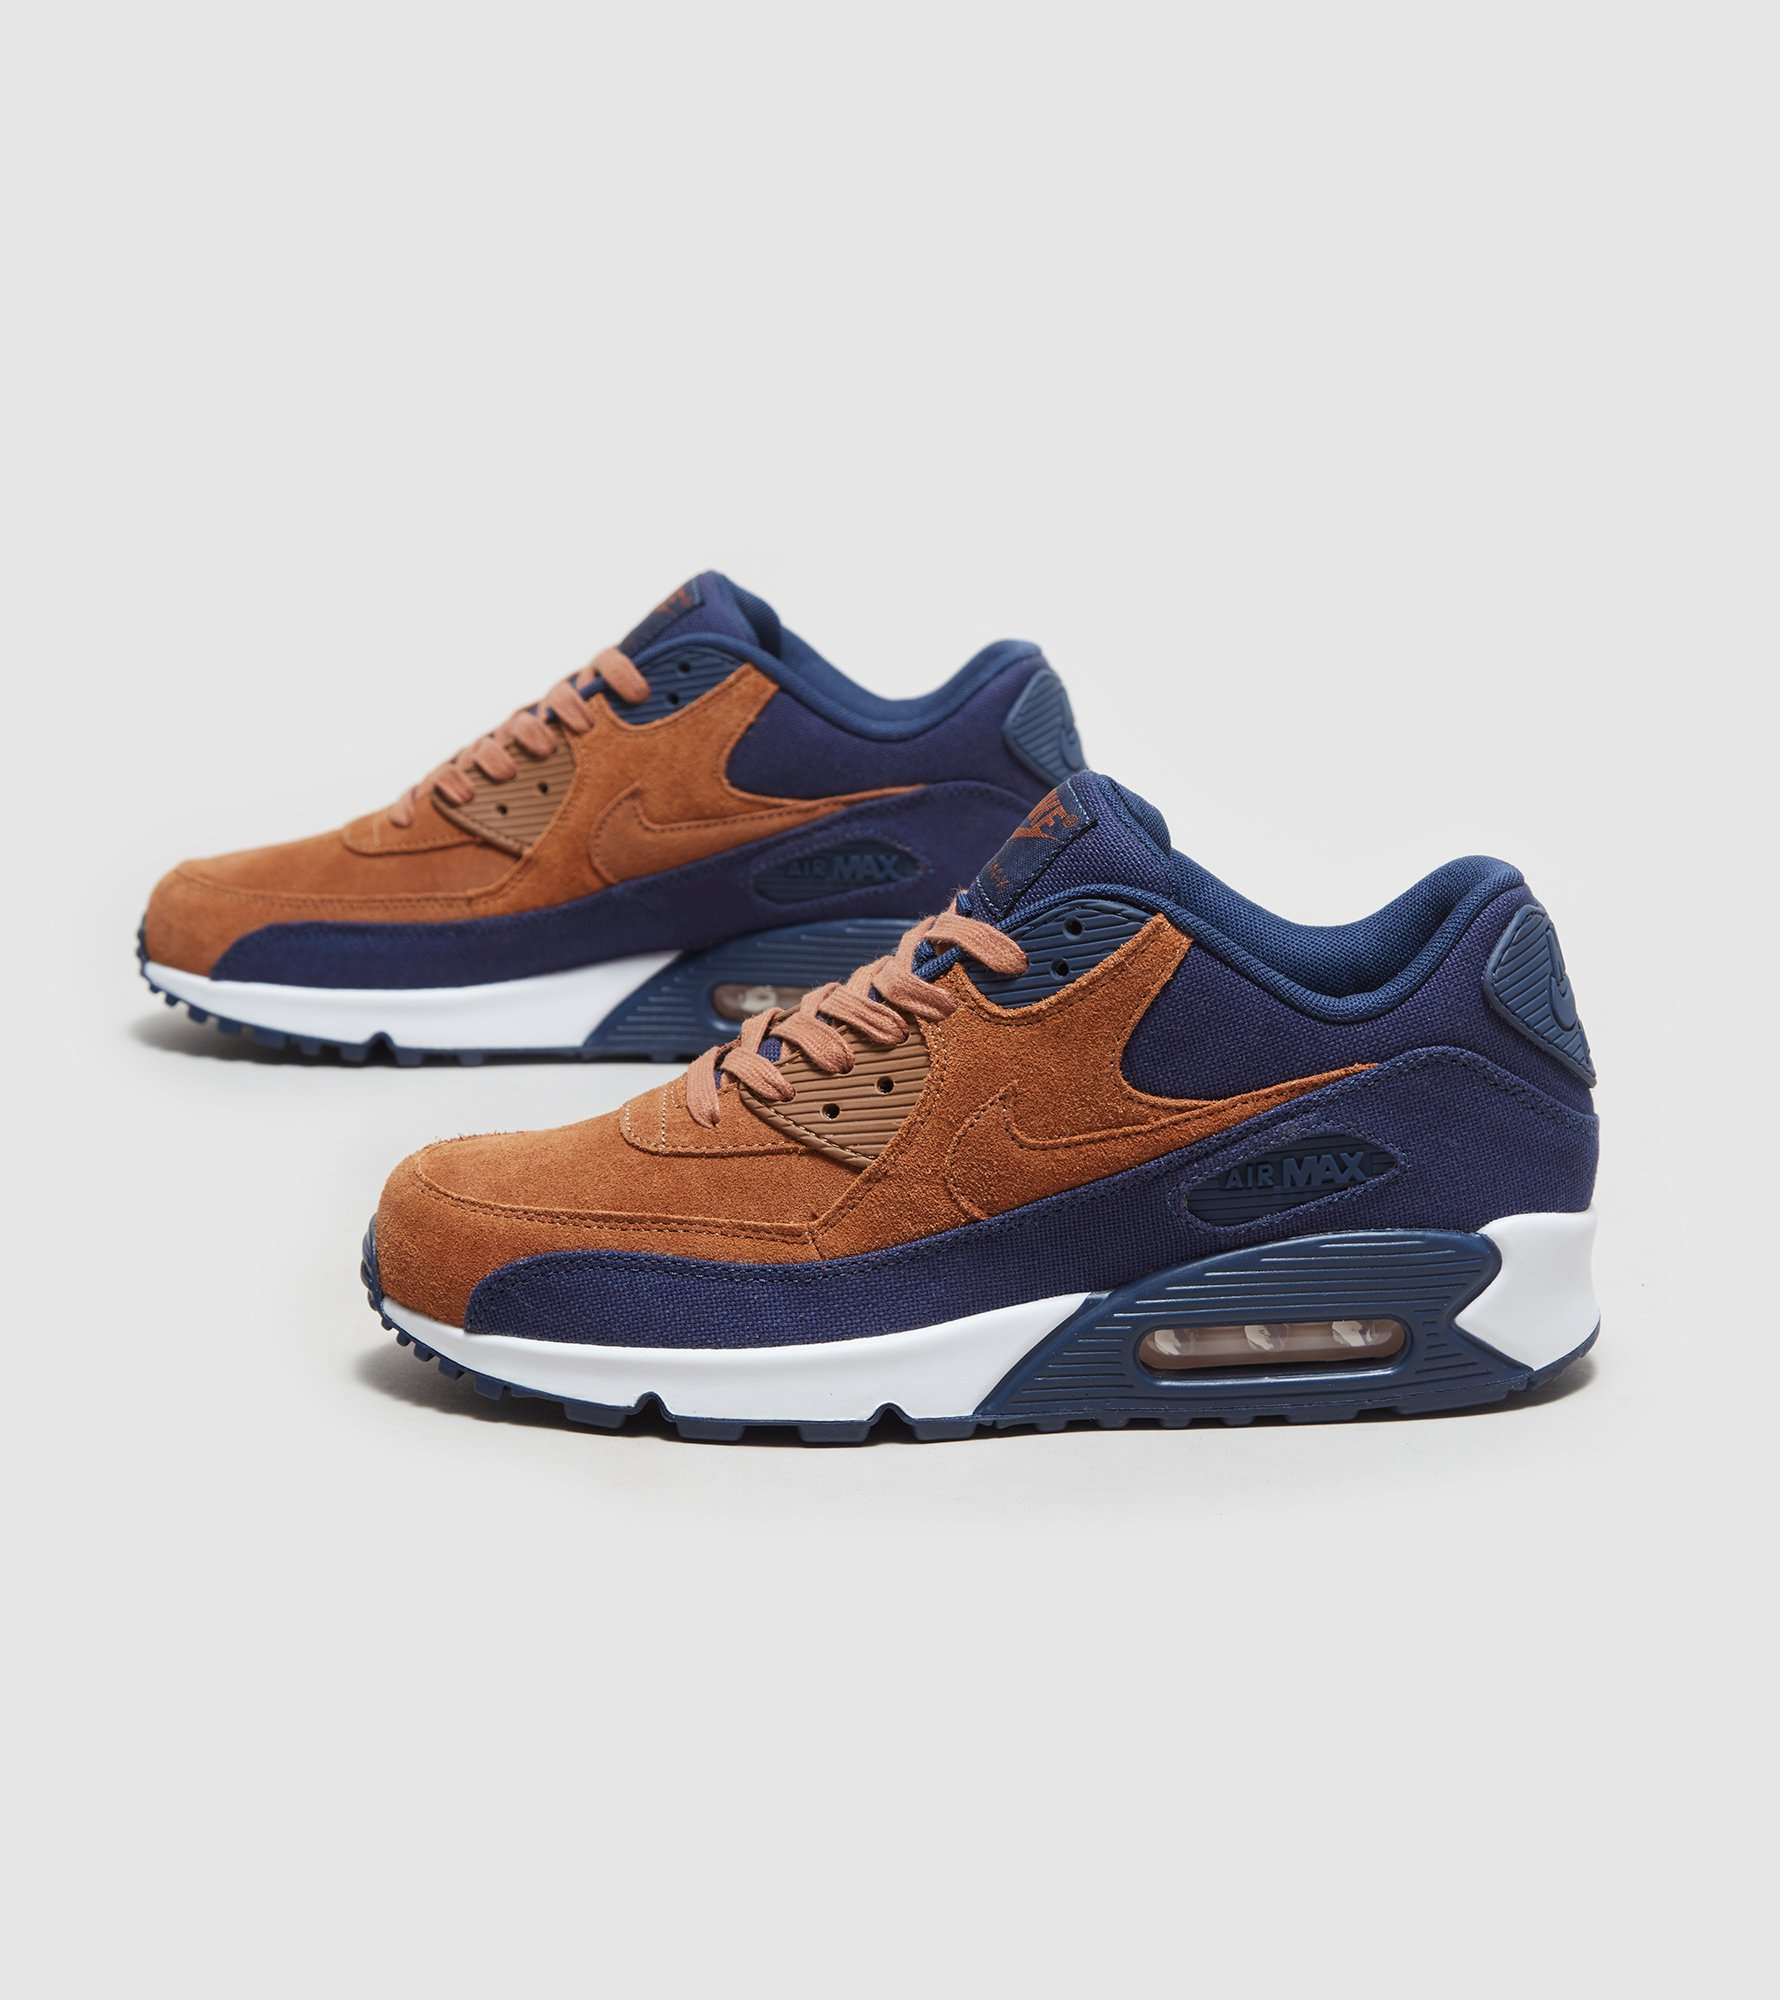 Nike Air Max 90 'Ale Brown' Pack | Size?